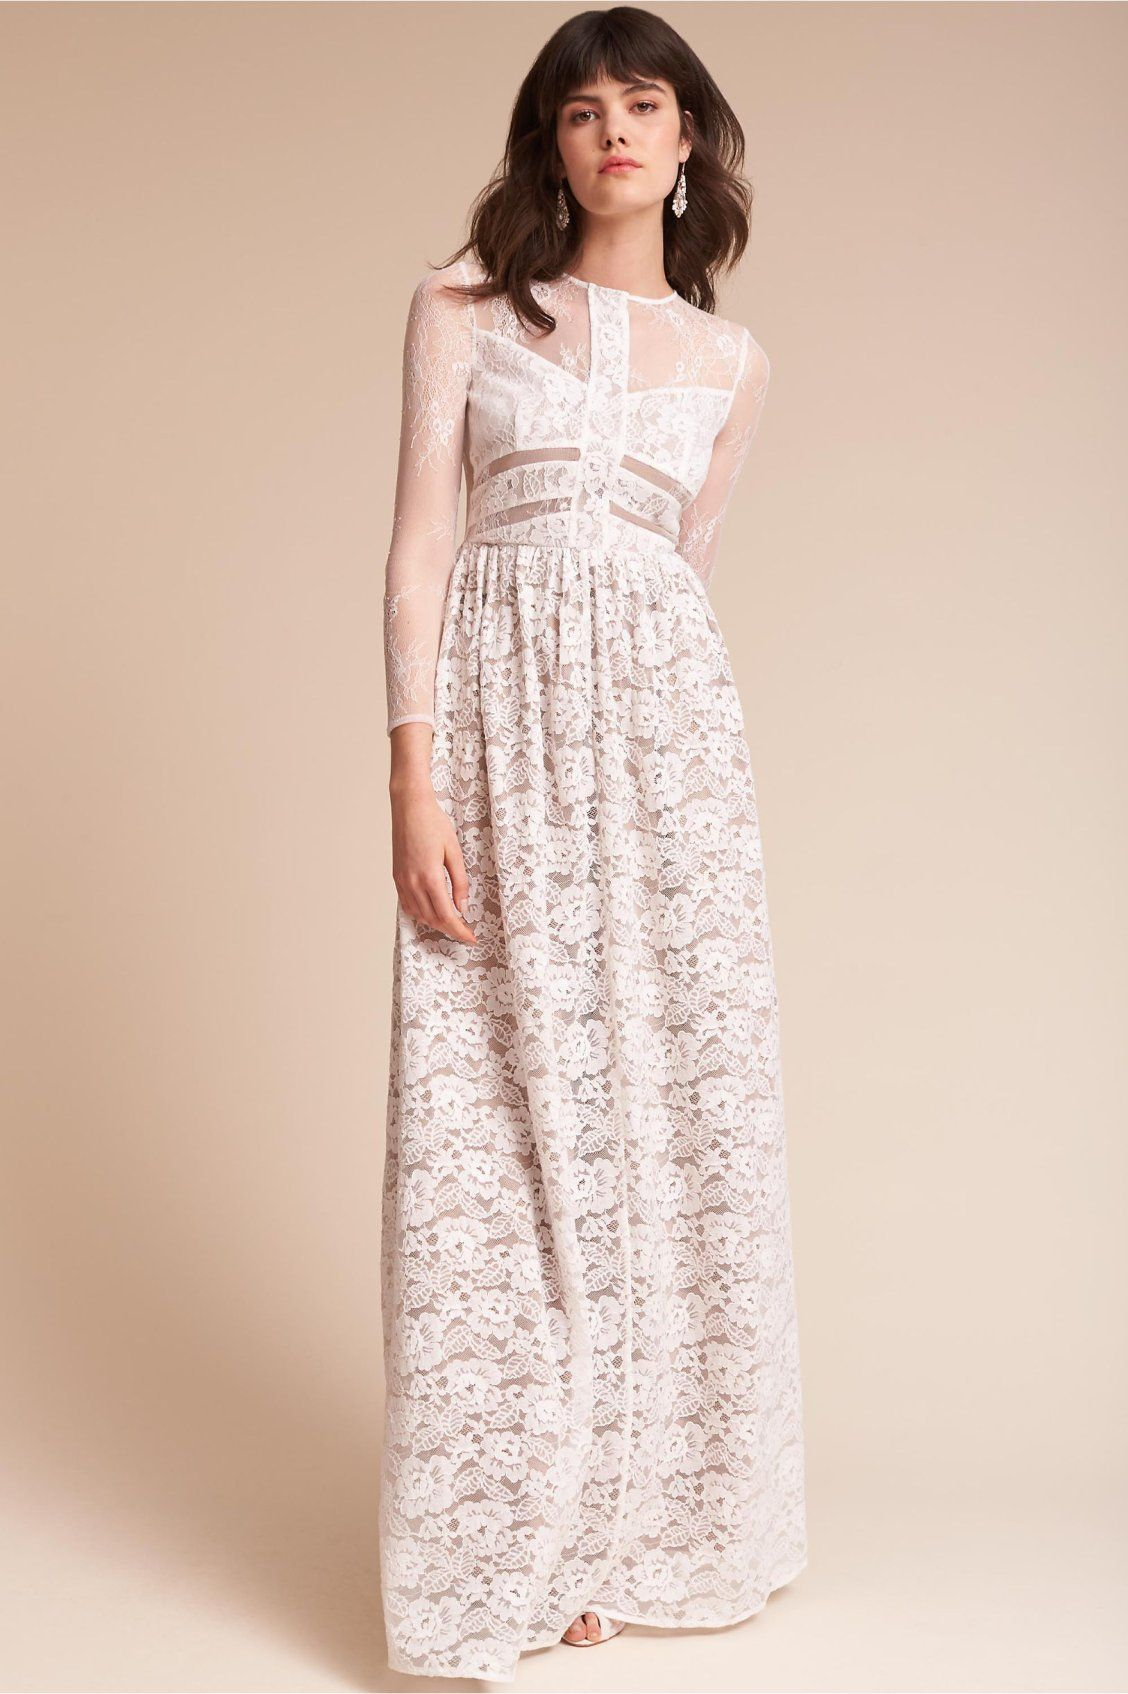 Noche Dress from BHLDN | Lace | Pinterest